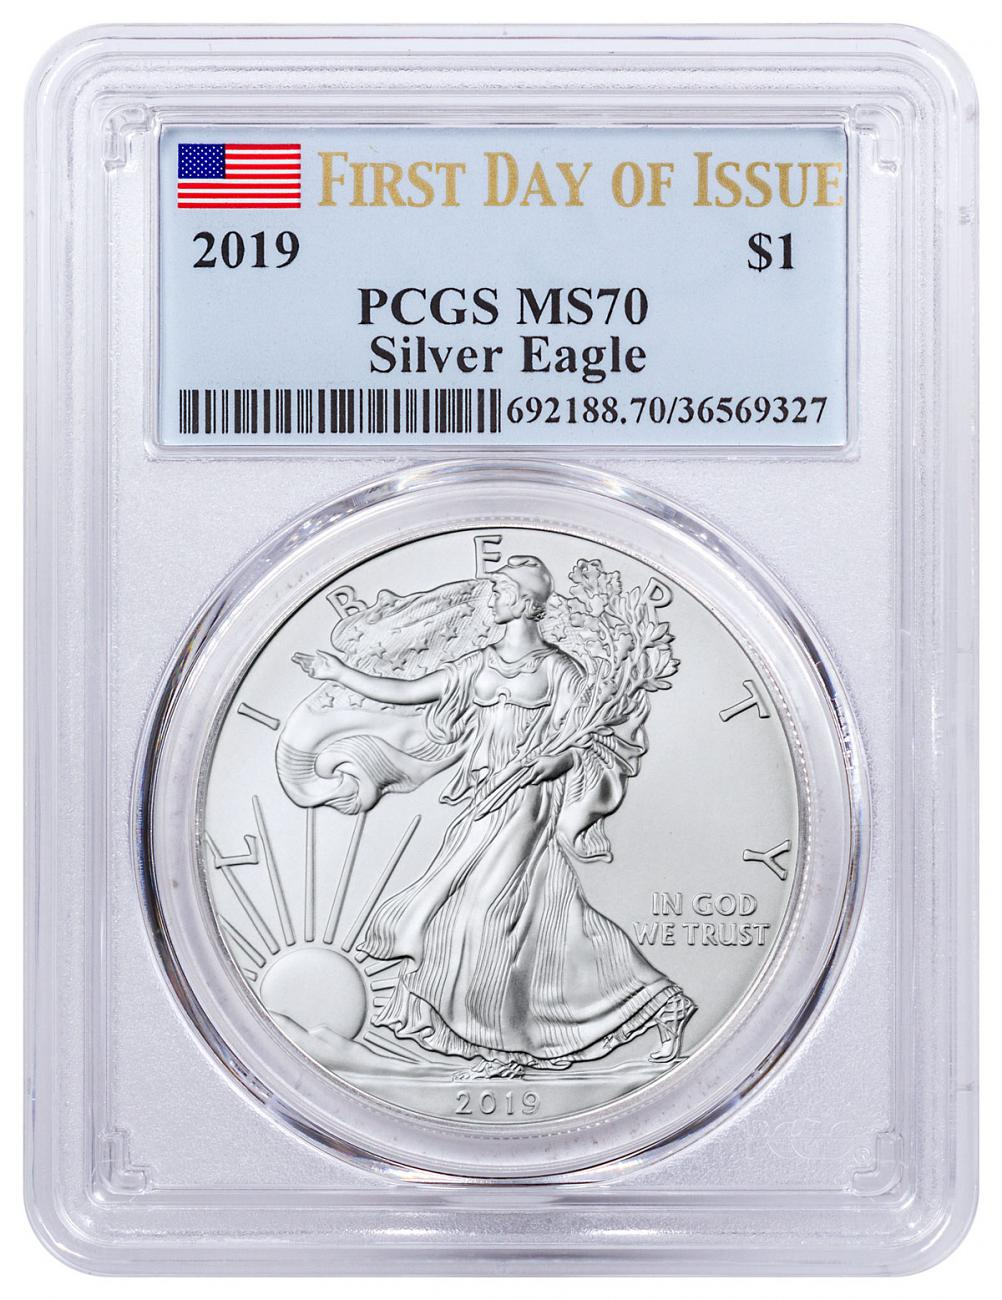 2019 1 oz Silver American Eagle $1 Coin PCGS MS70 FDI Flag Label